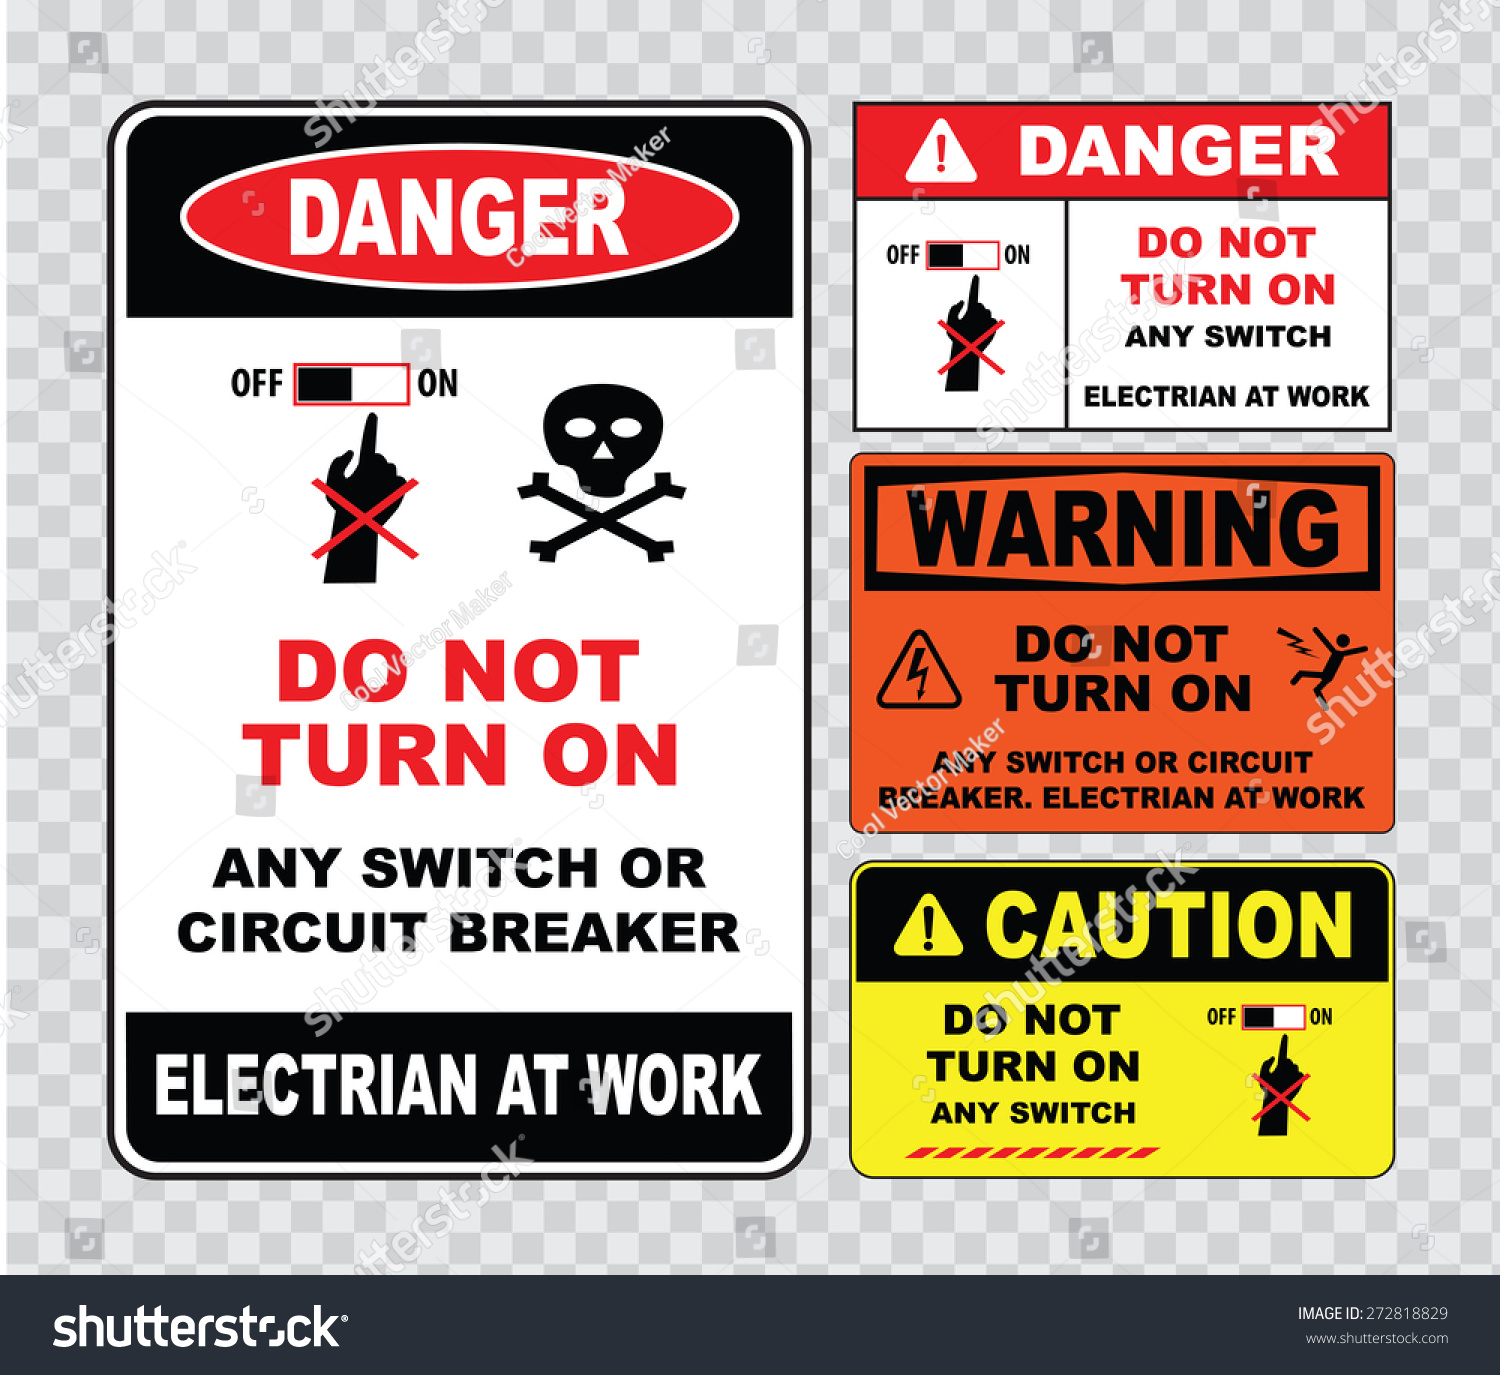 High Voltage Sign Electrical Safety Stock Vector Royalty Free How A Circuit Breaker Works Or Do Not Turn On Any Switch